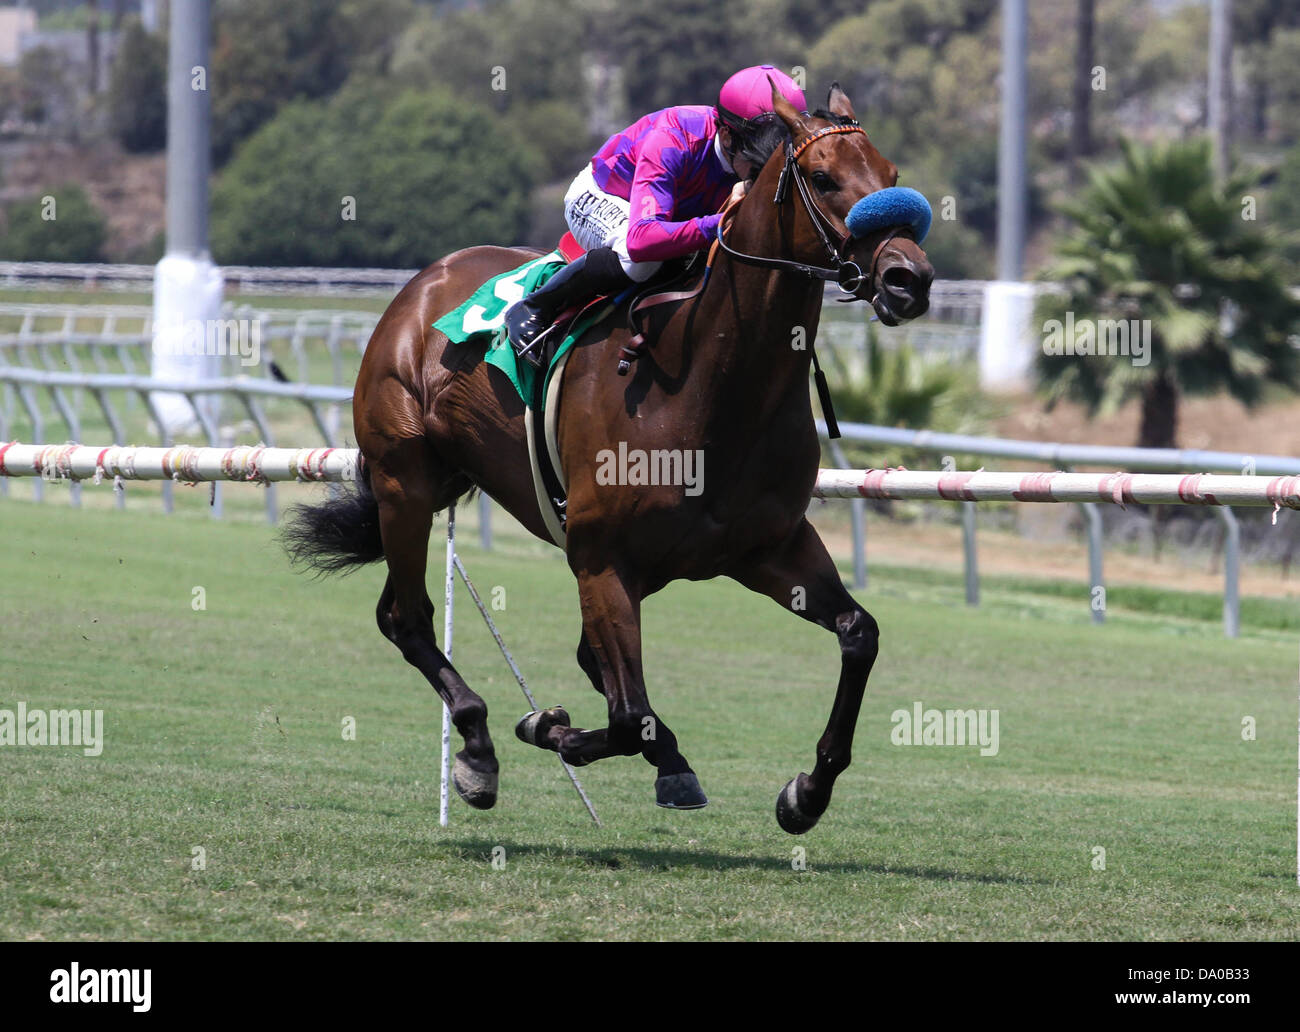 Inglewood, CA, USA. 29th June, 2013. Obviously with Joe Talamo aboard wins the G1 ''Win and Your Win'' - Stock Image